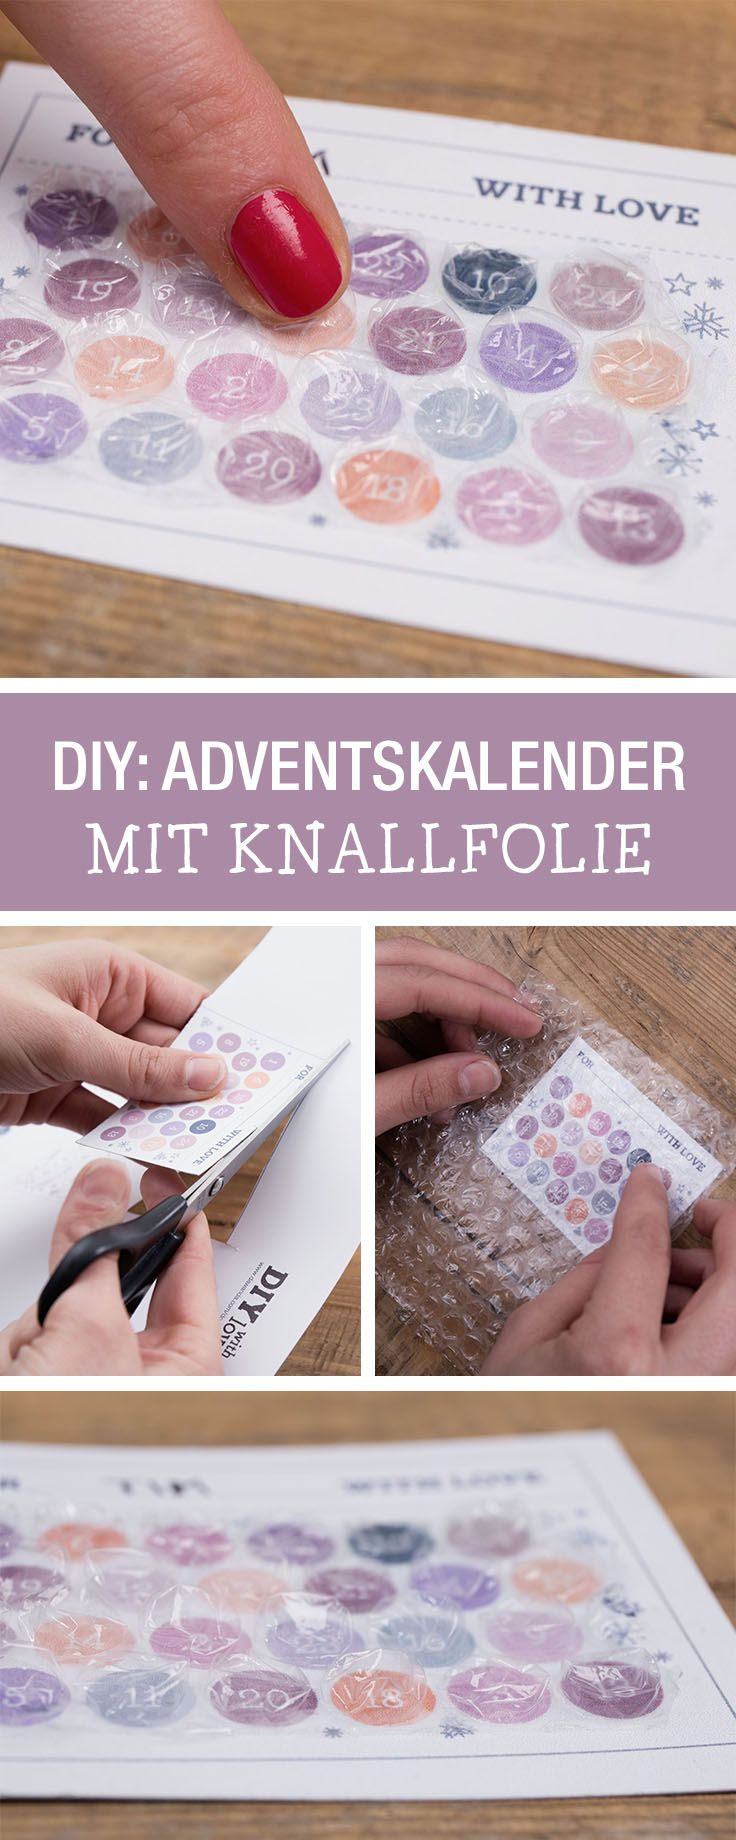 Witziger kleiner Adventskalender mit Knallfolie, kleine Geschenkidee / cute little advents calendar made with popping foil via DaWanda.com